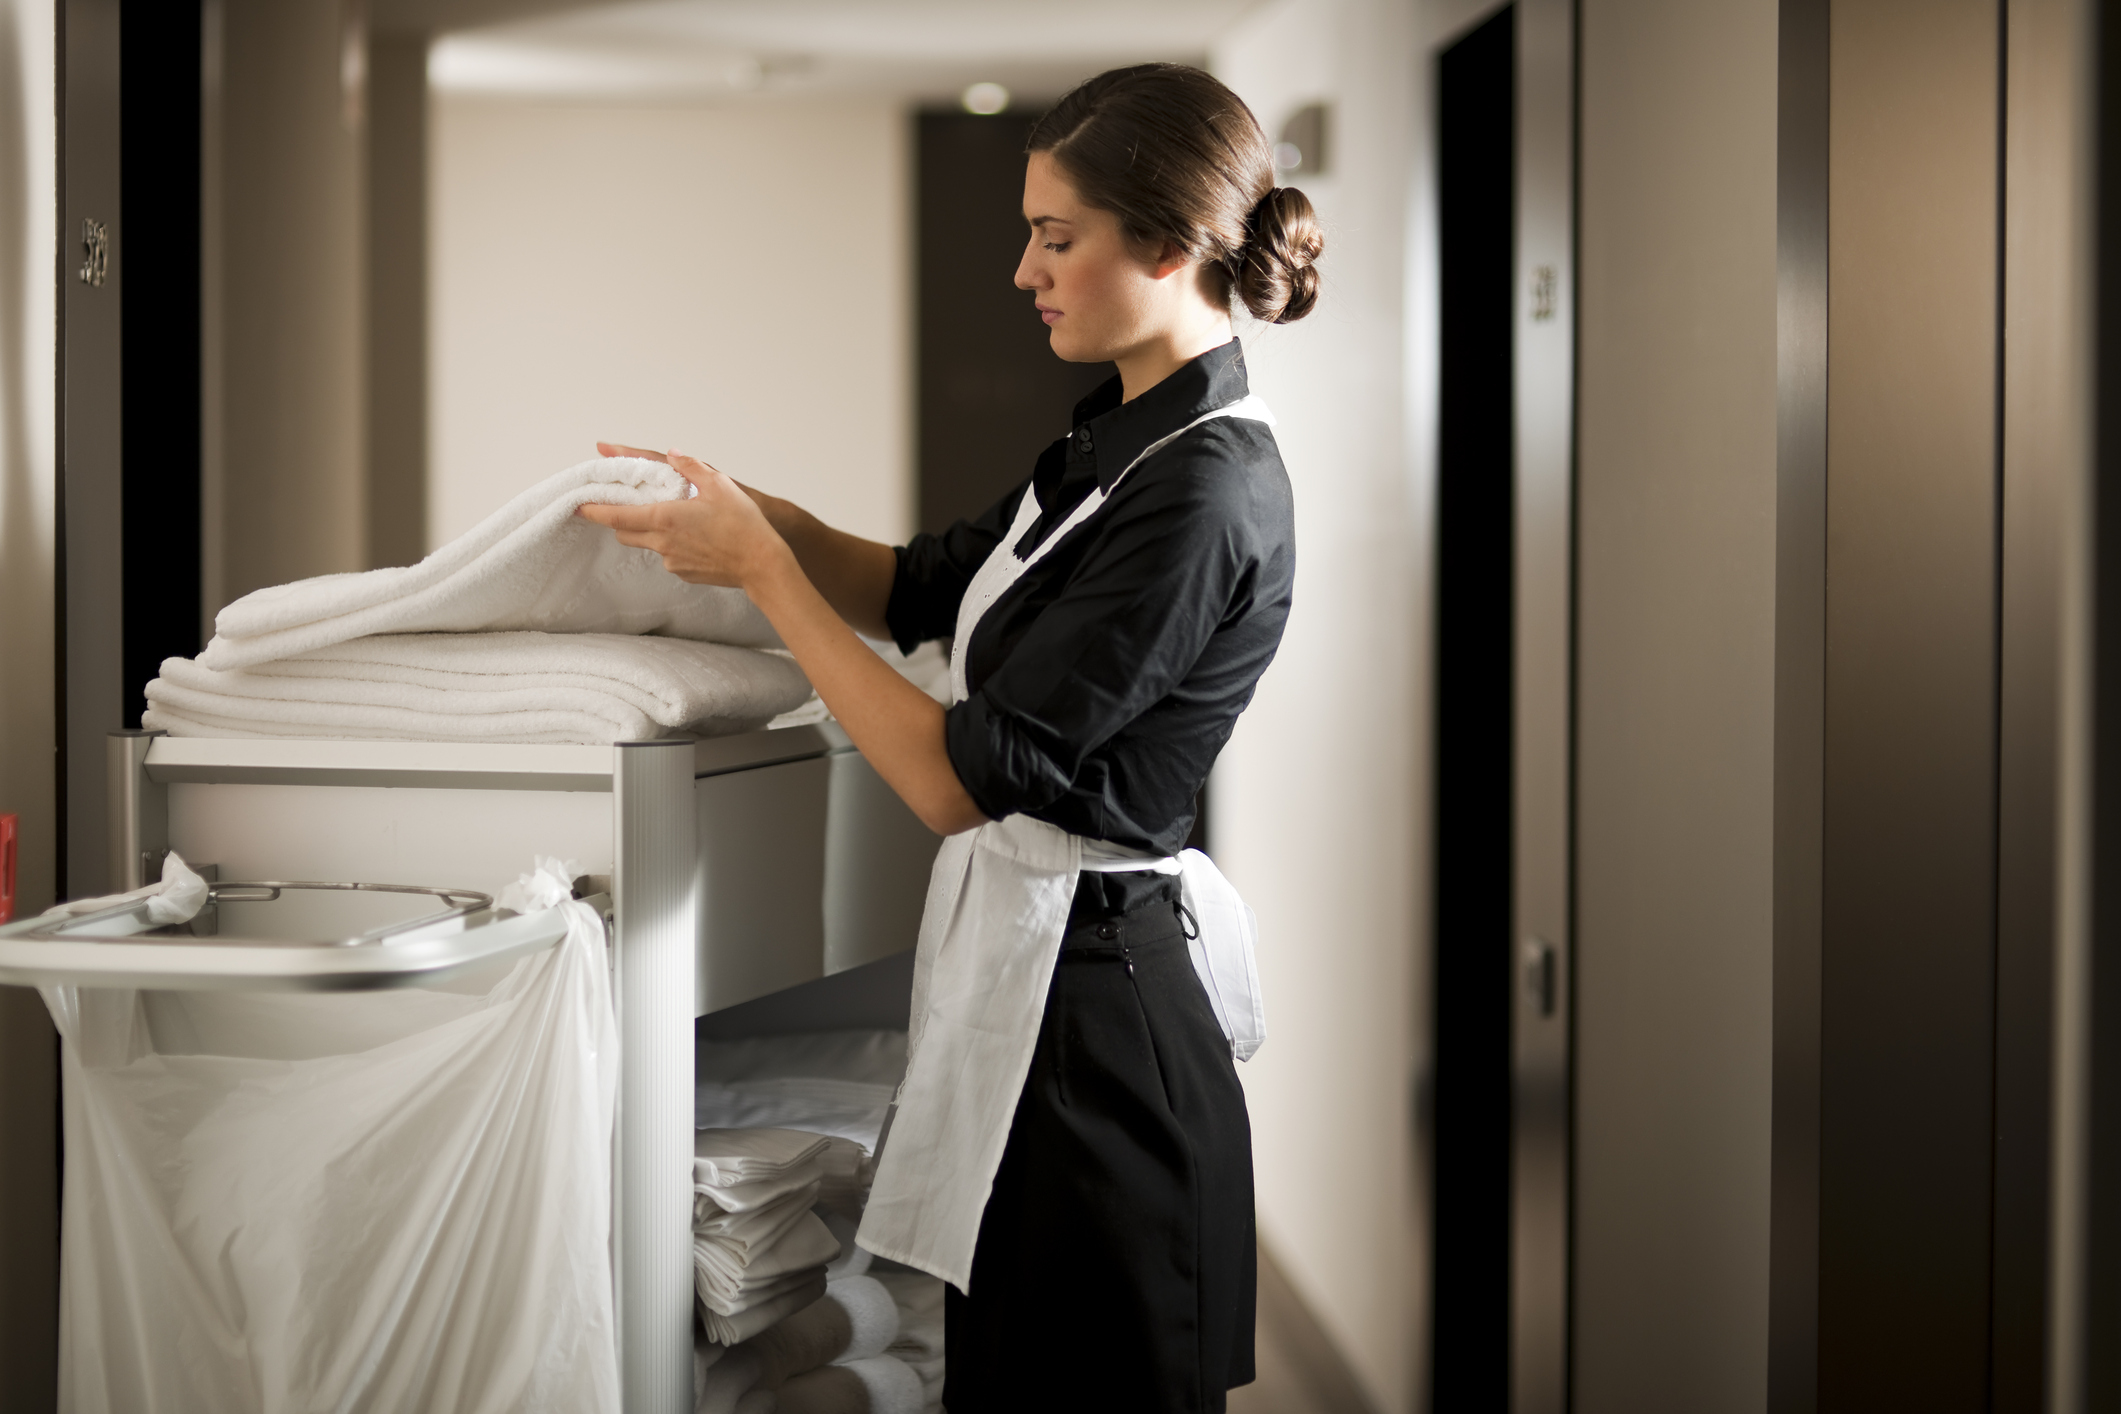 What are the Duties of a Room Attendant ?